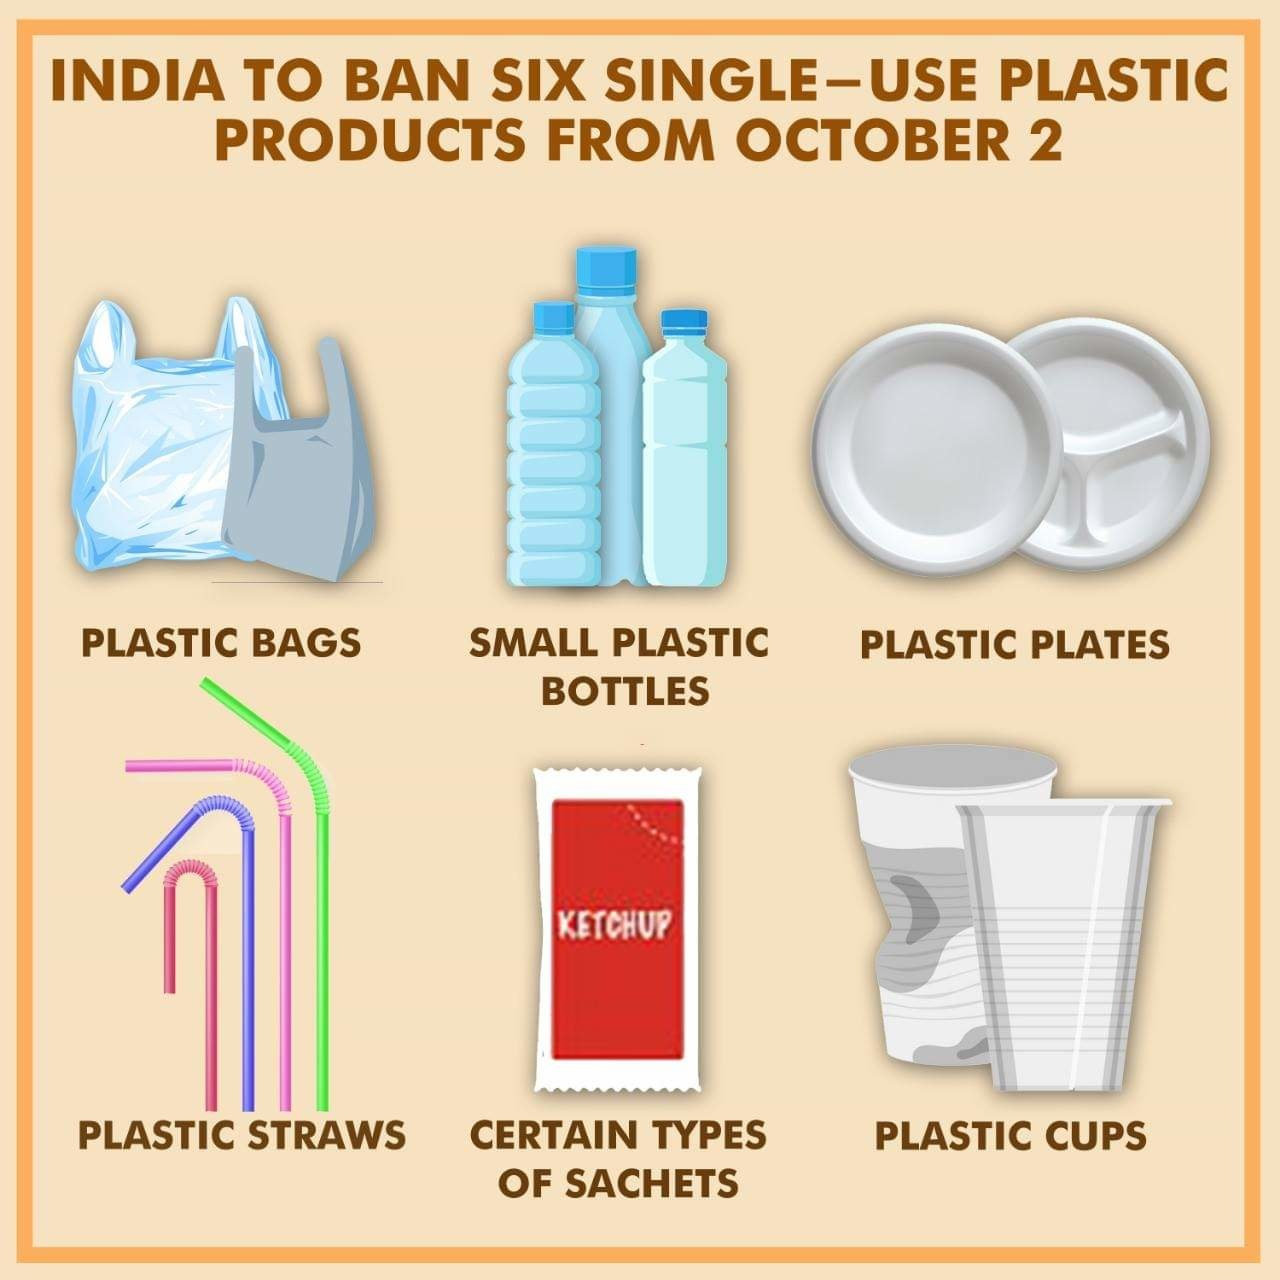 22 Facts About Plastic Pollution (And 10 Things We Can Do